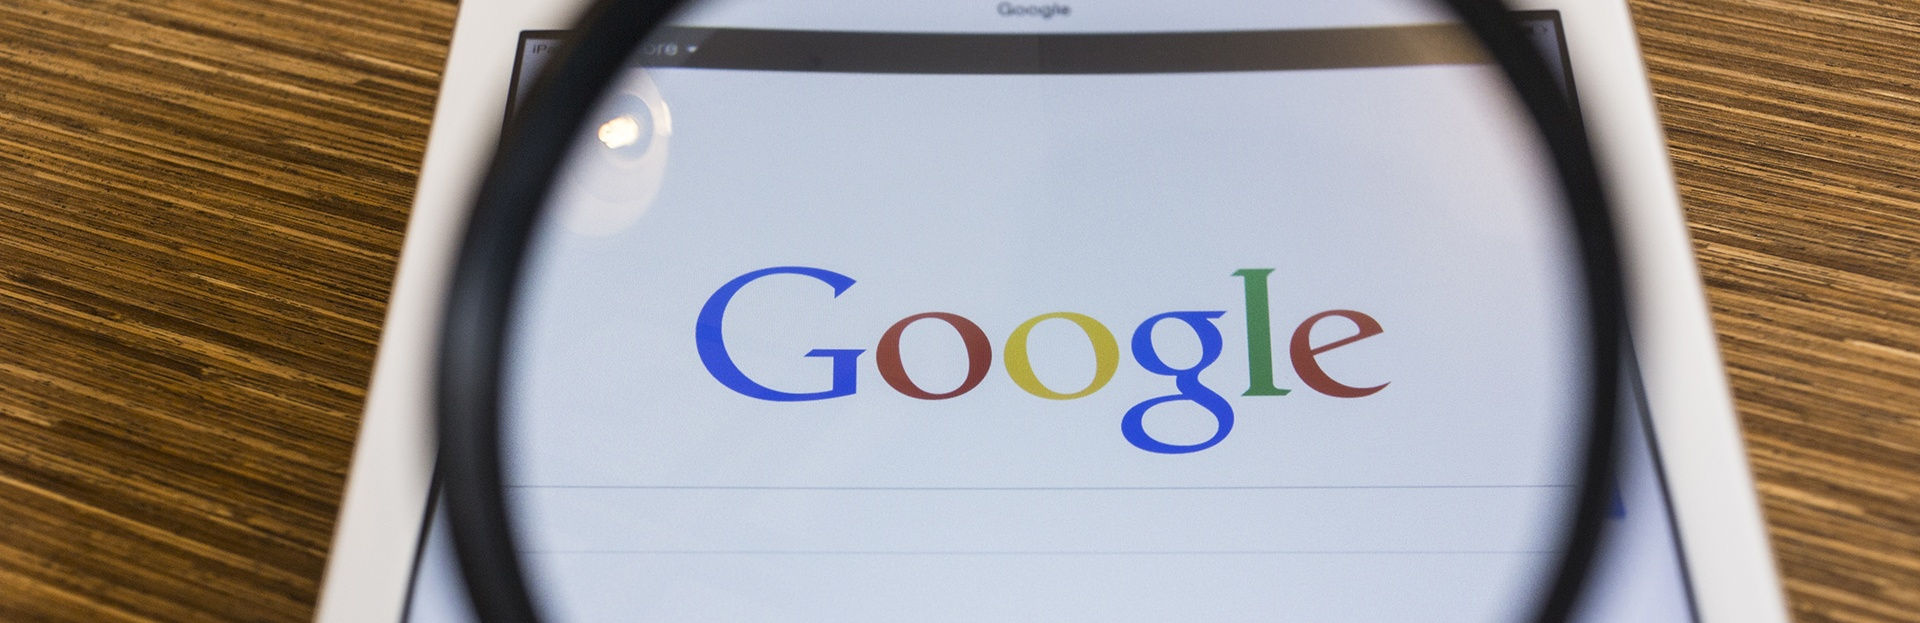 Google Developing Communication App for Businesses